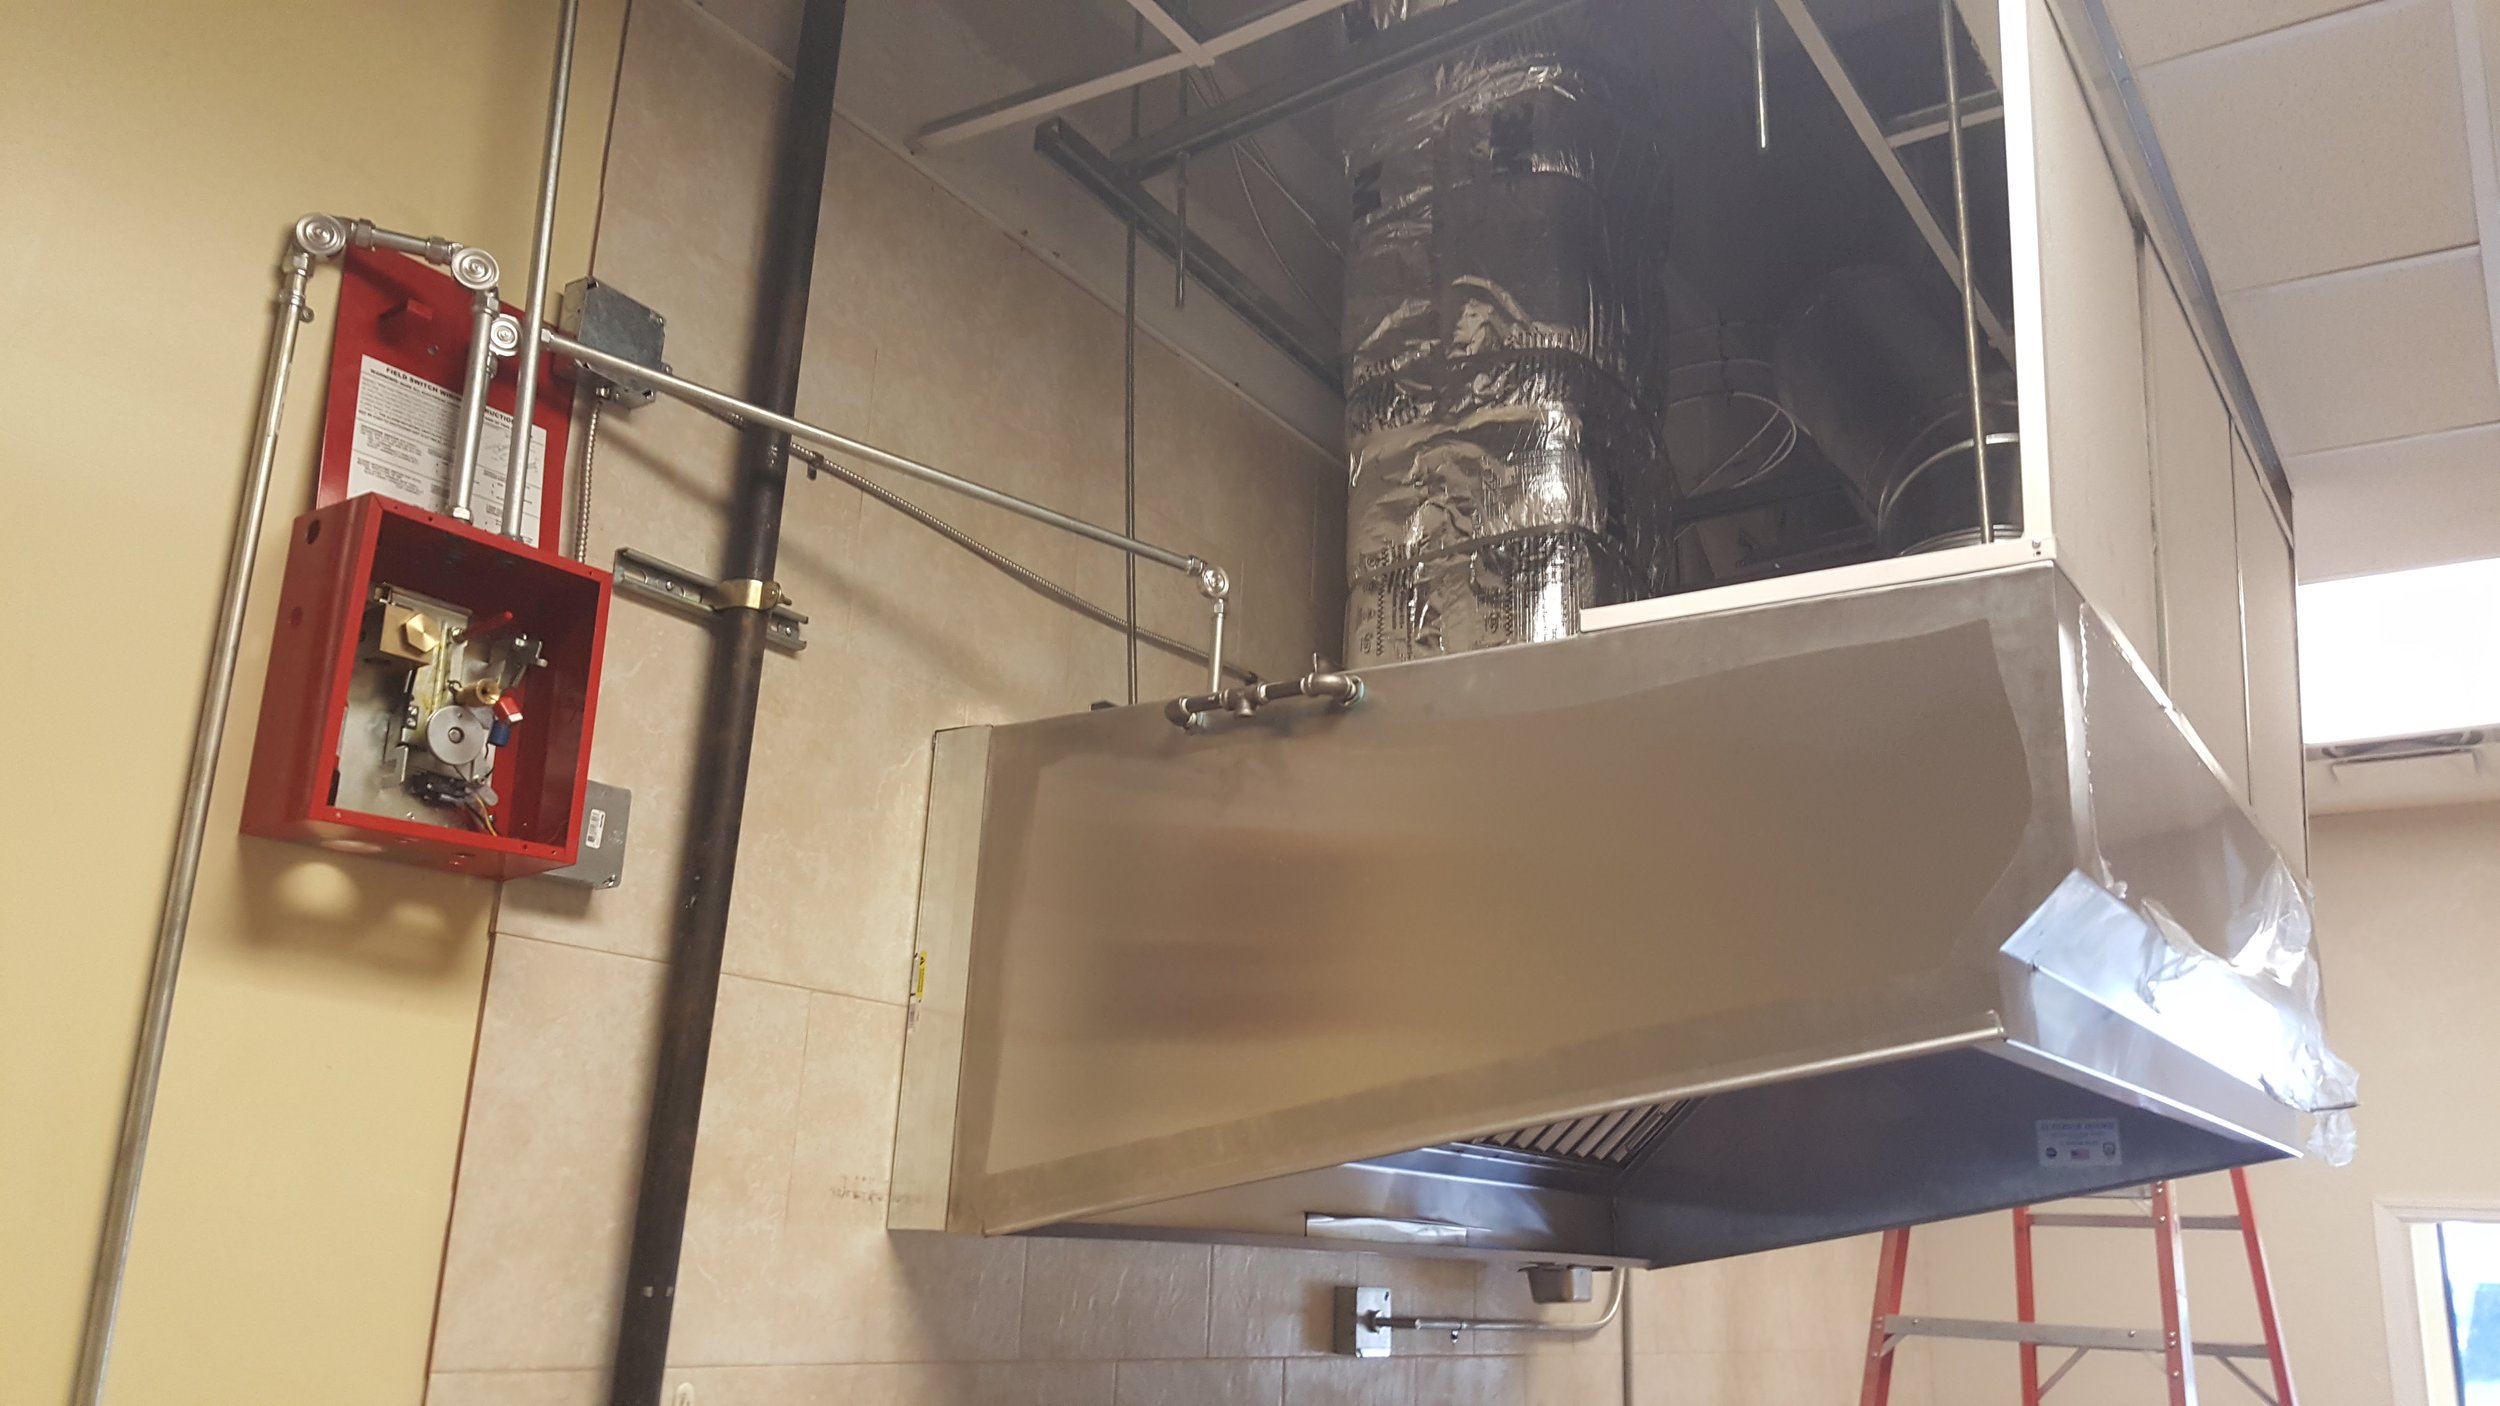 Liquid Tight Welded Ducts  and the  Fire Protection System  for the Kitchen Hood